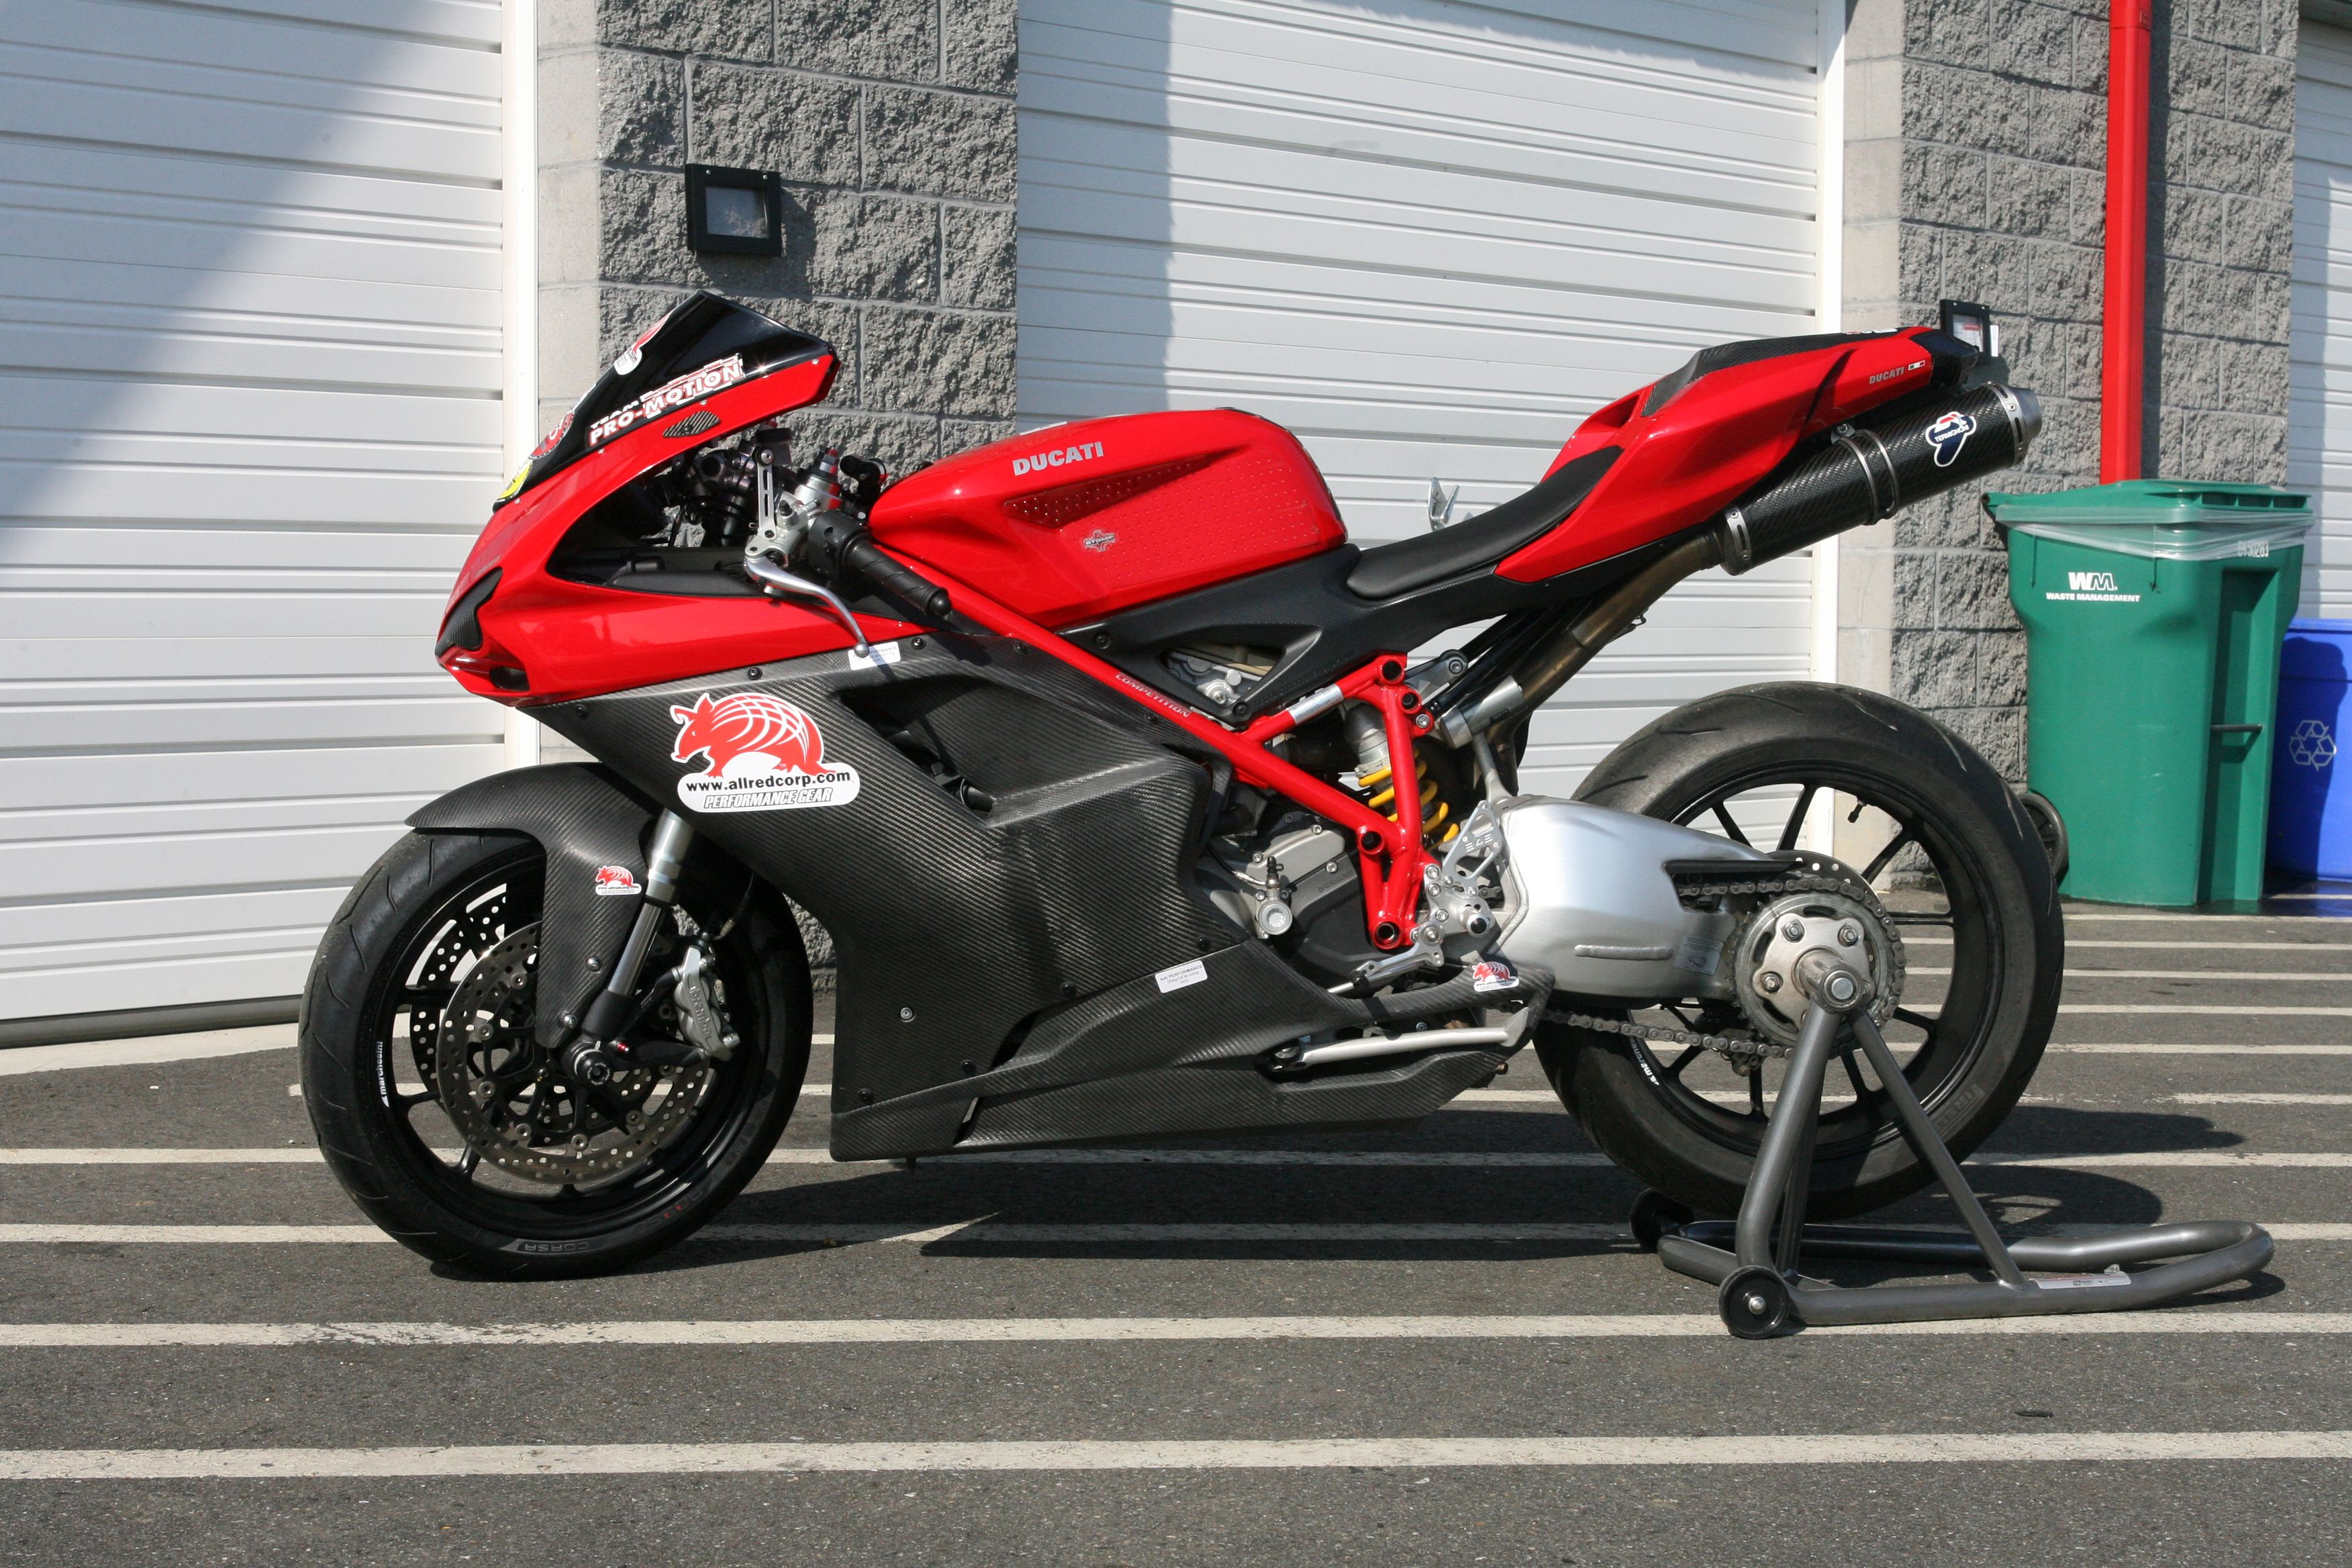 Carbon Fiber Kevlar Street Race Fairing On Ducati 848 Fast And